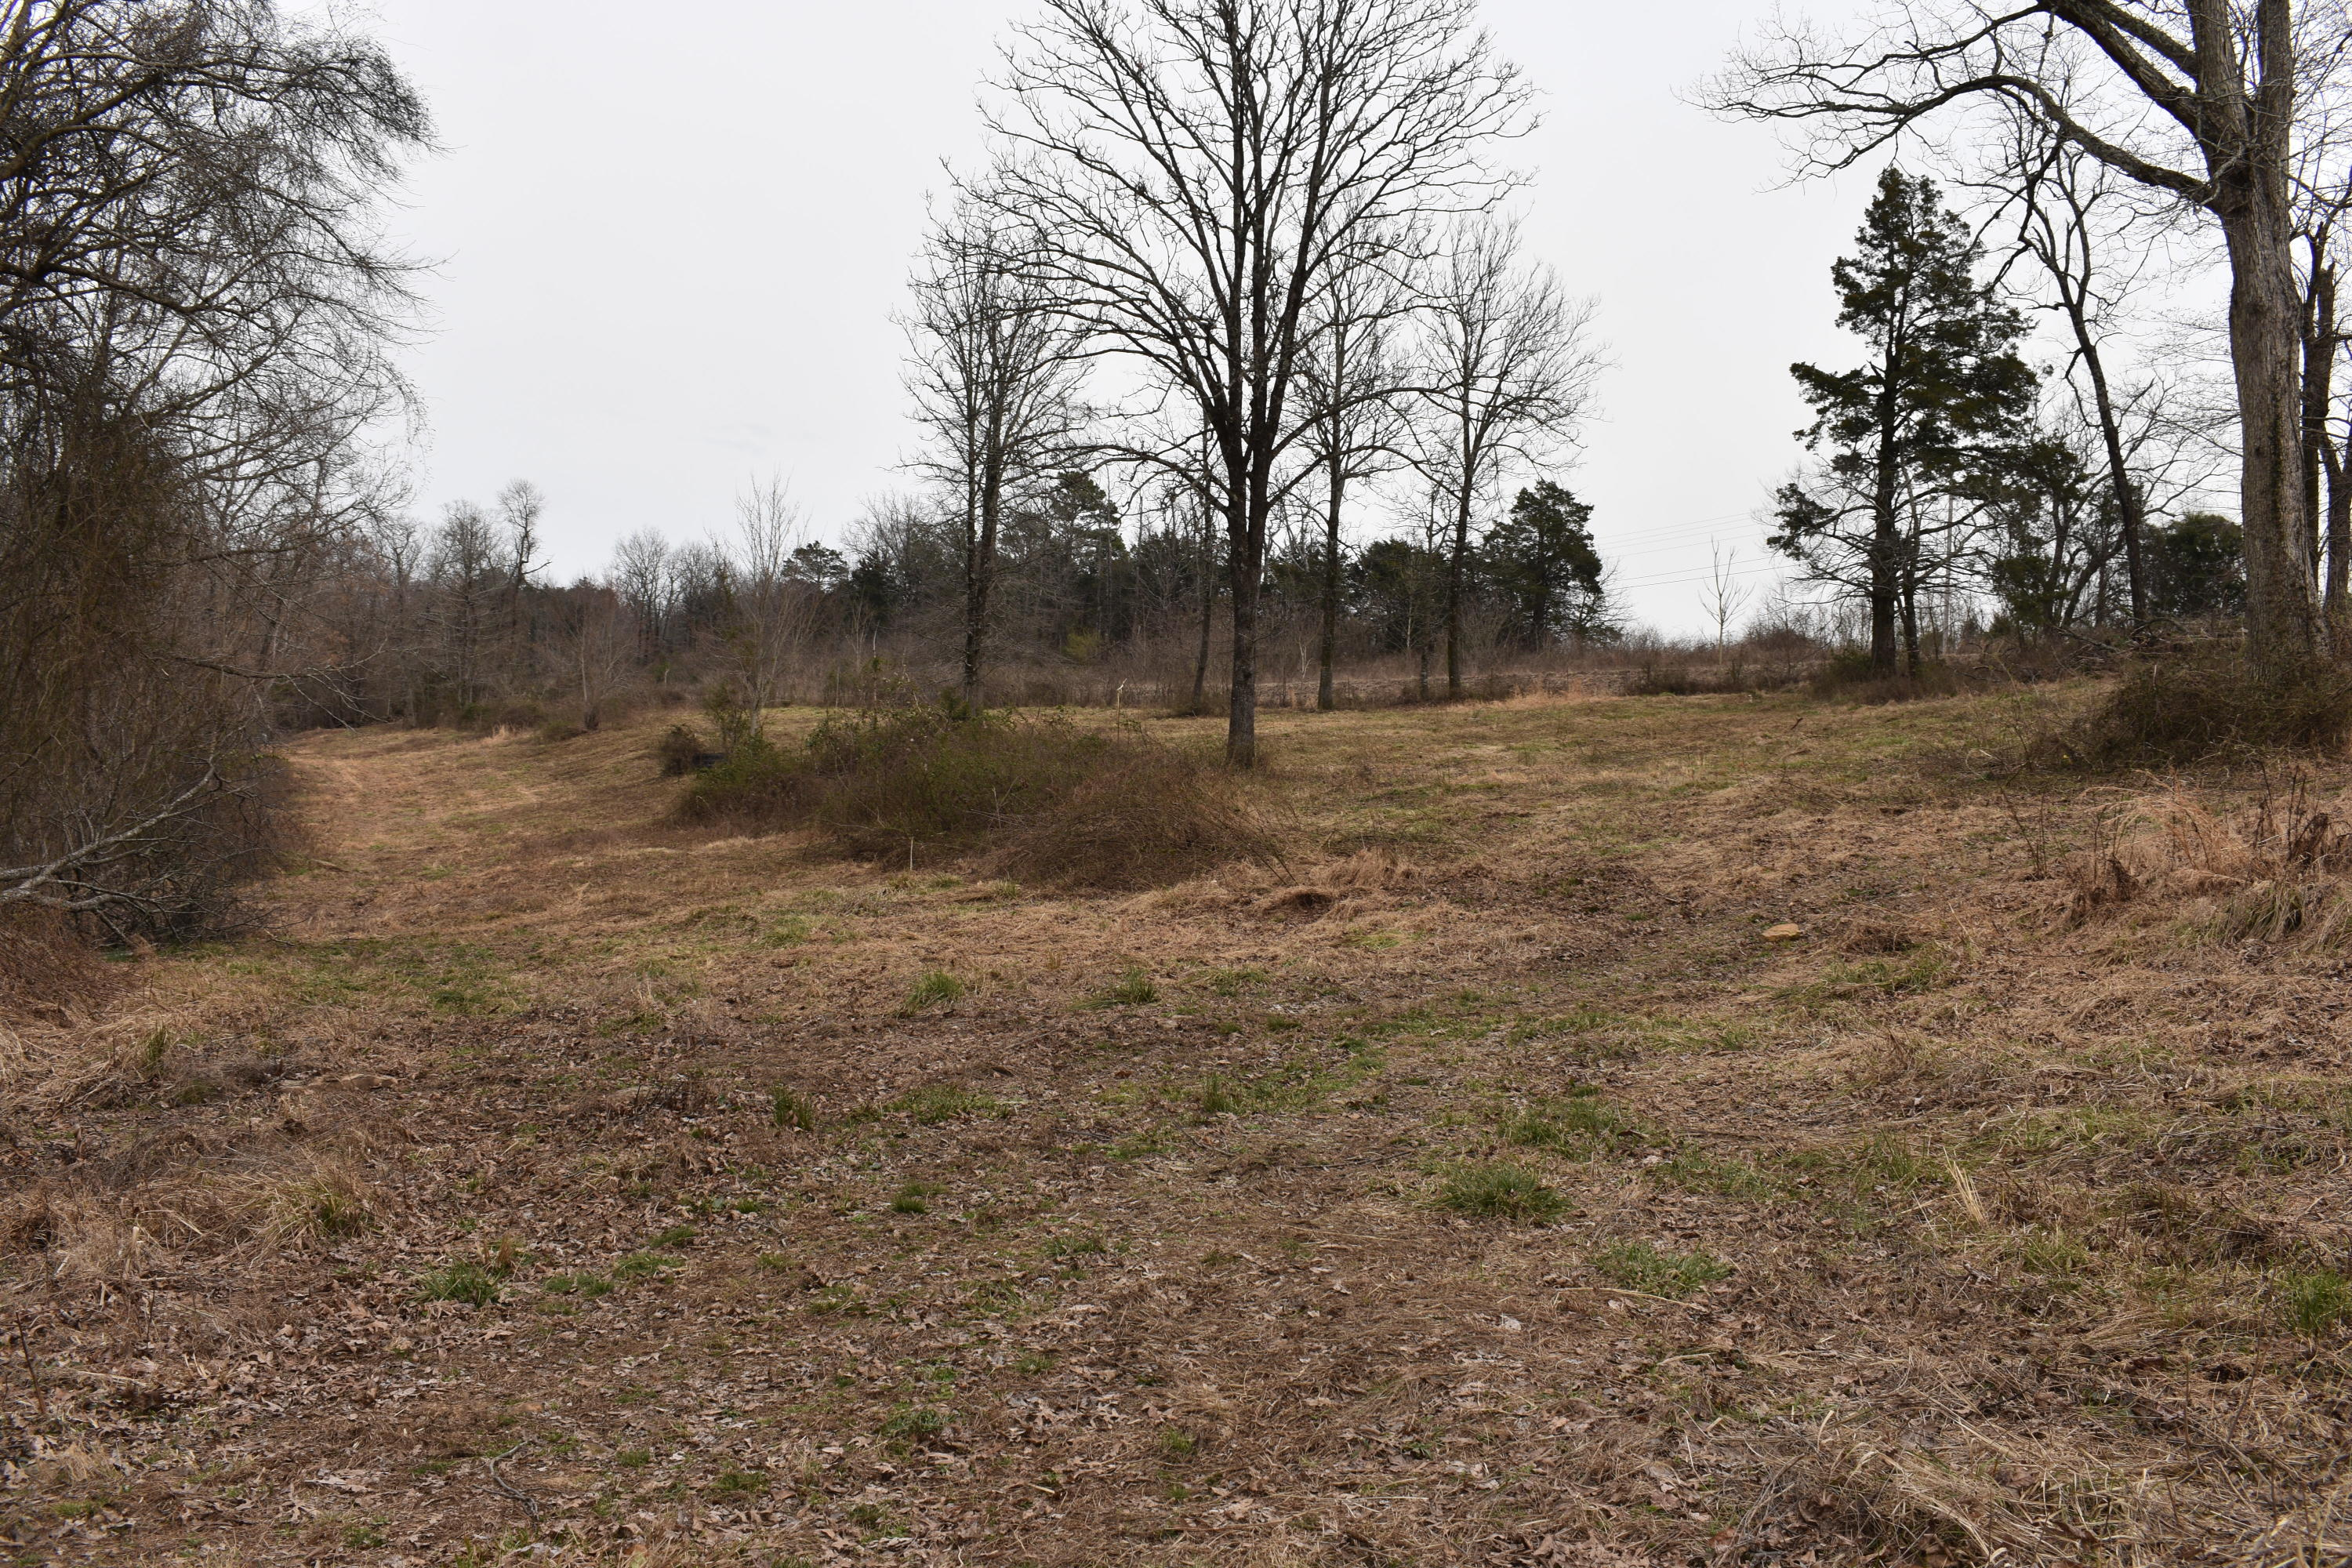 Large photo 29 of land for sale at 5867 Co Rd 4160 , Oark, AR, listed by Coldwell Banker Premier Realty